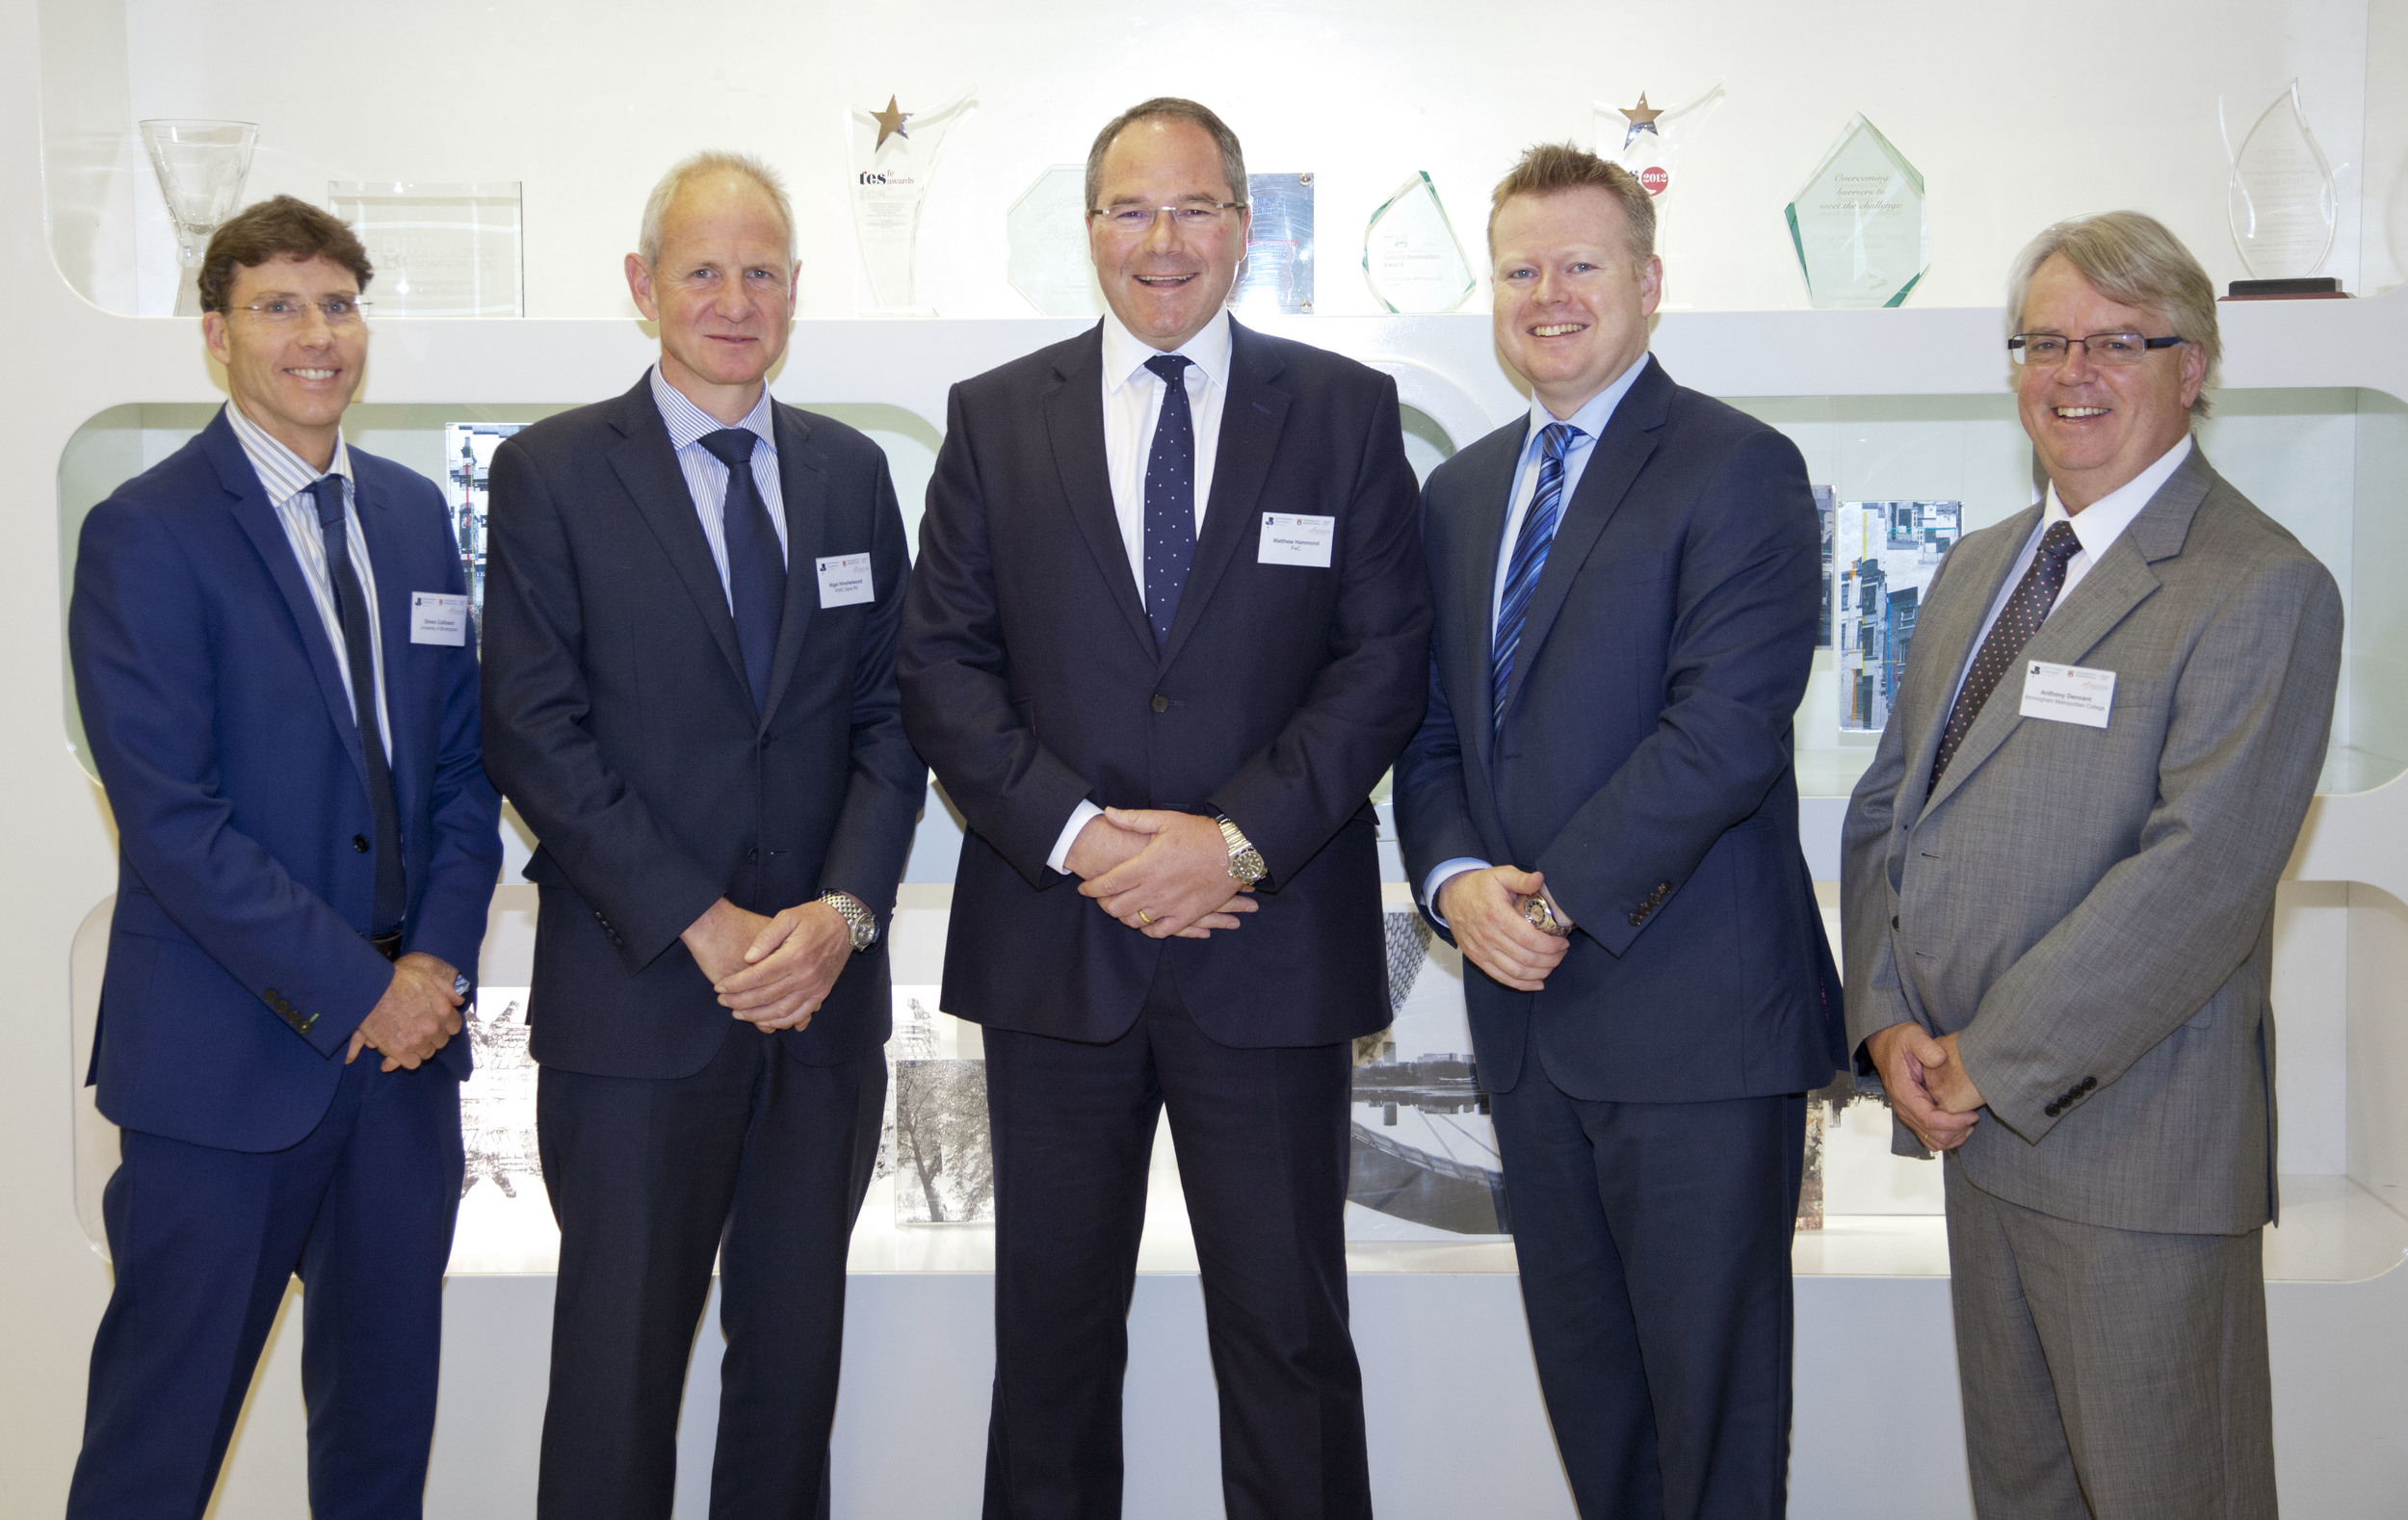 Pictured (left to right) are Professor Simon Collinson (dean of Birmingham Business School at Birmingham University), Nigel Hinshelwood (HSBC's head of UK), Matthew Hammond (regional chairman of PwC), Paul Faulkner (GBCC chief executive) and Tony Dennant (head of Matthew Boulton College at Birmingham Met).